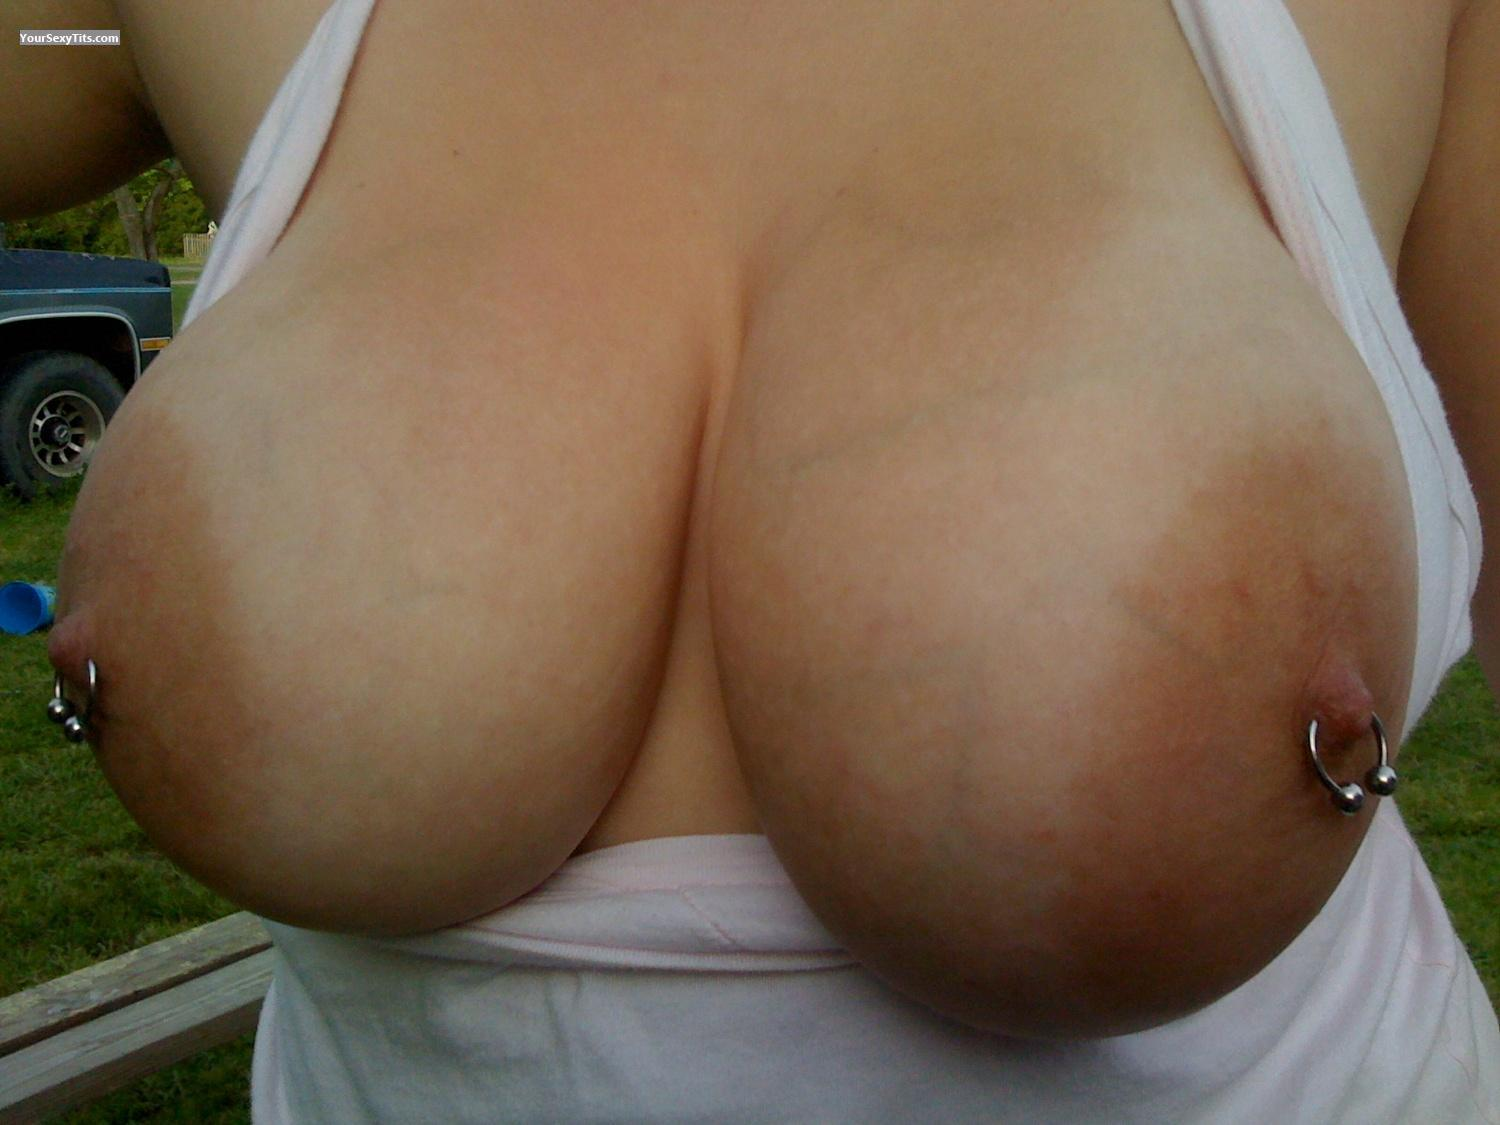 Tit Flash: Very Big Tits By IPhone - SexyG from United StatesPierced Nipples